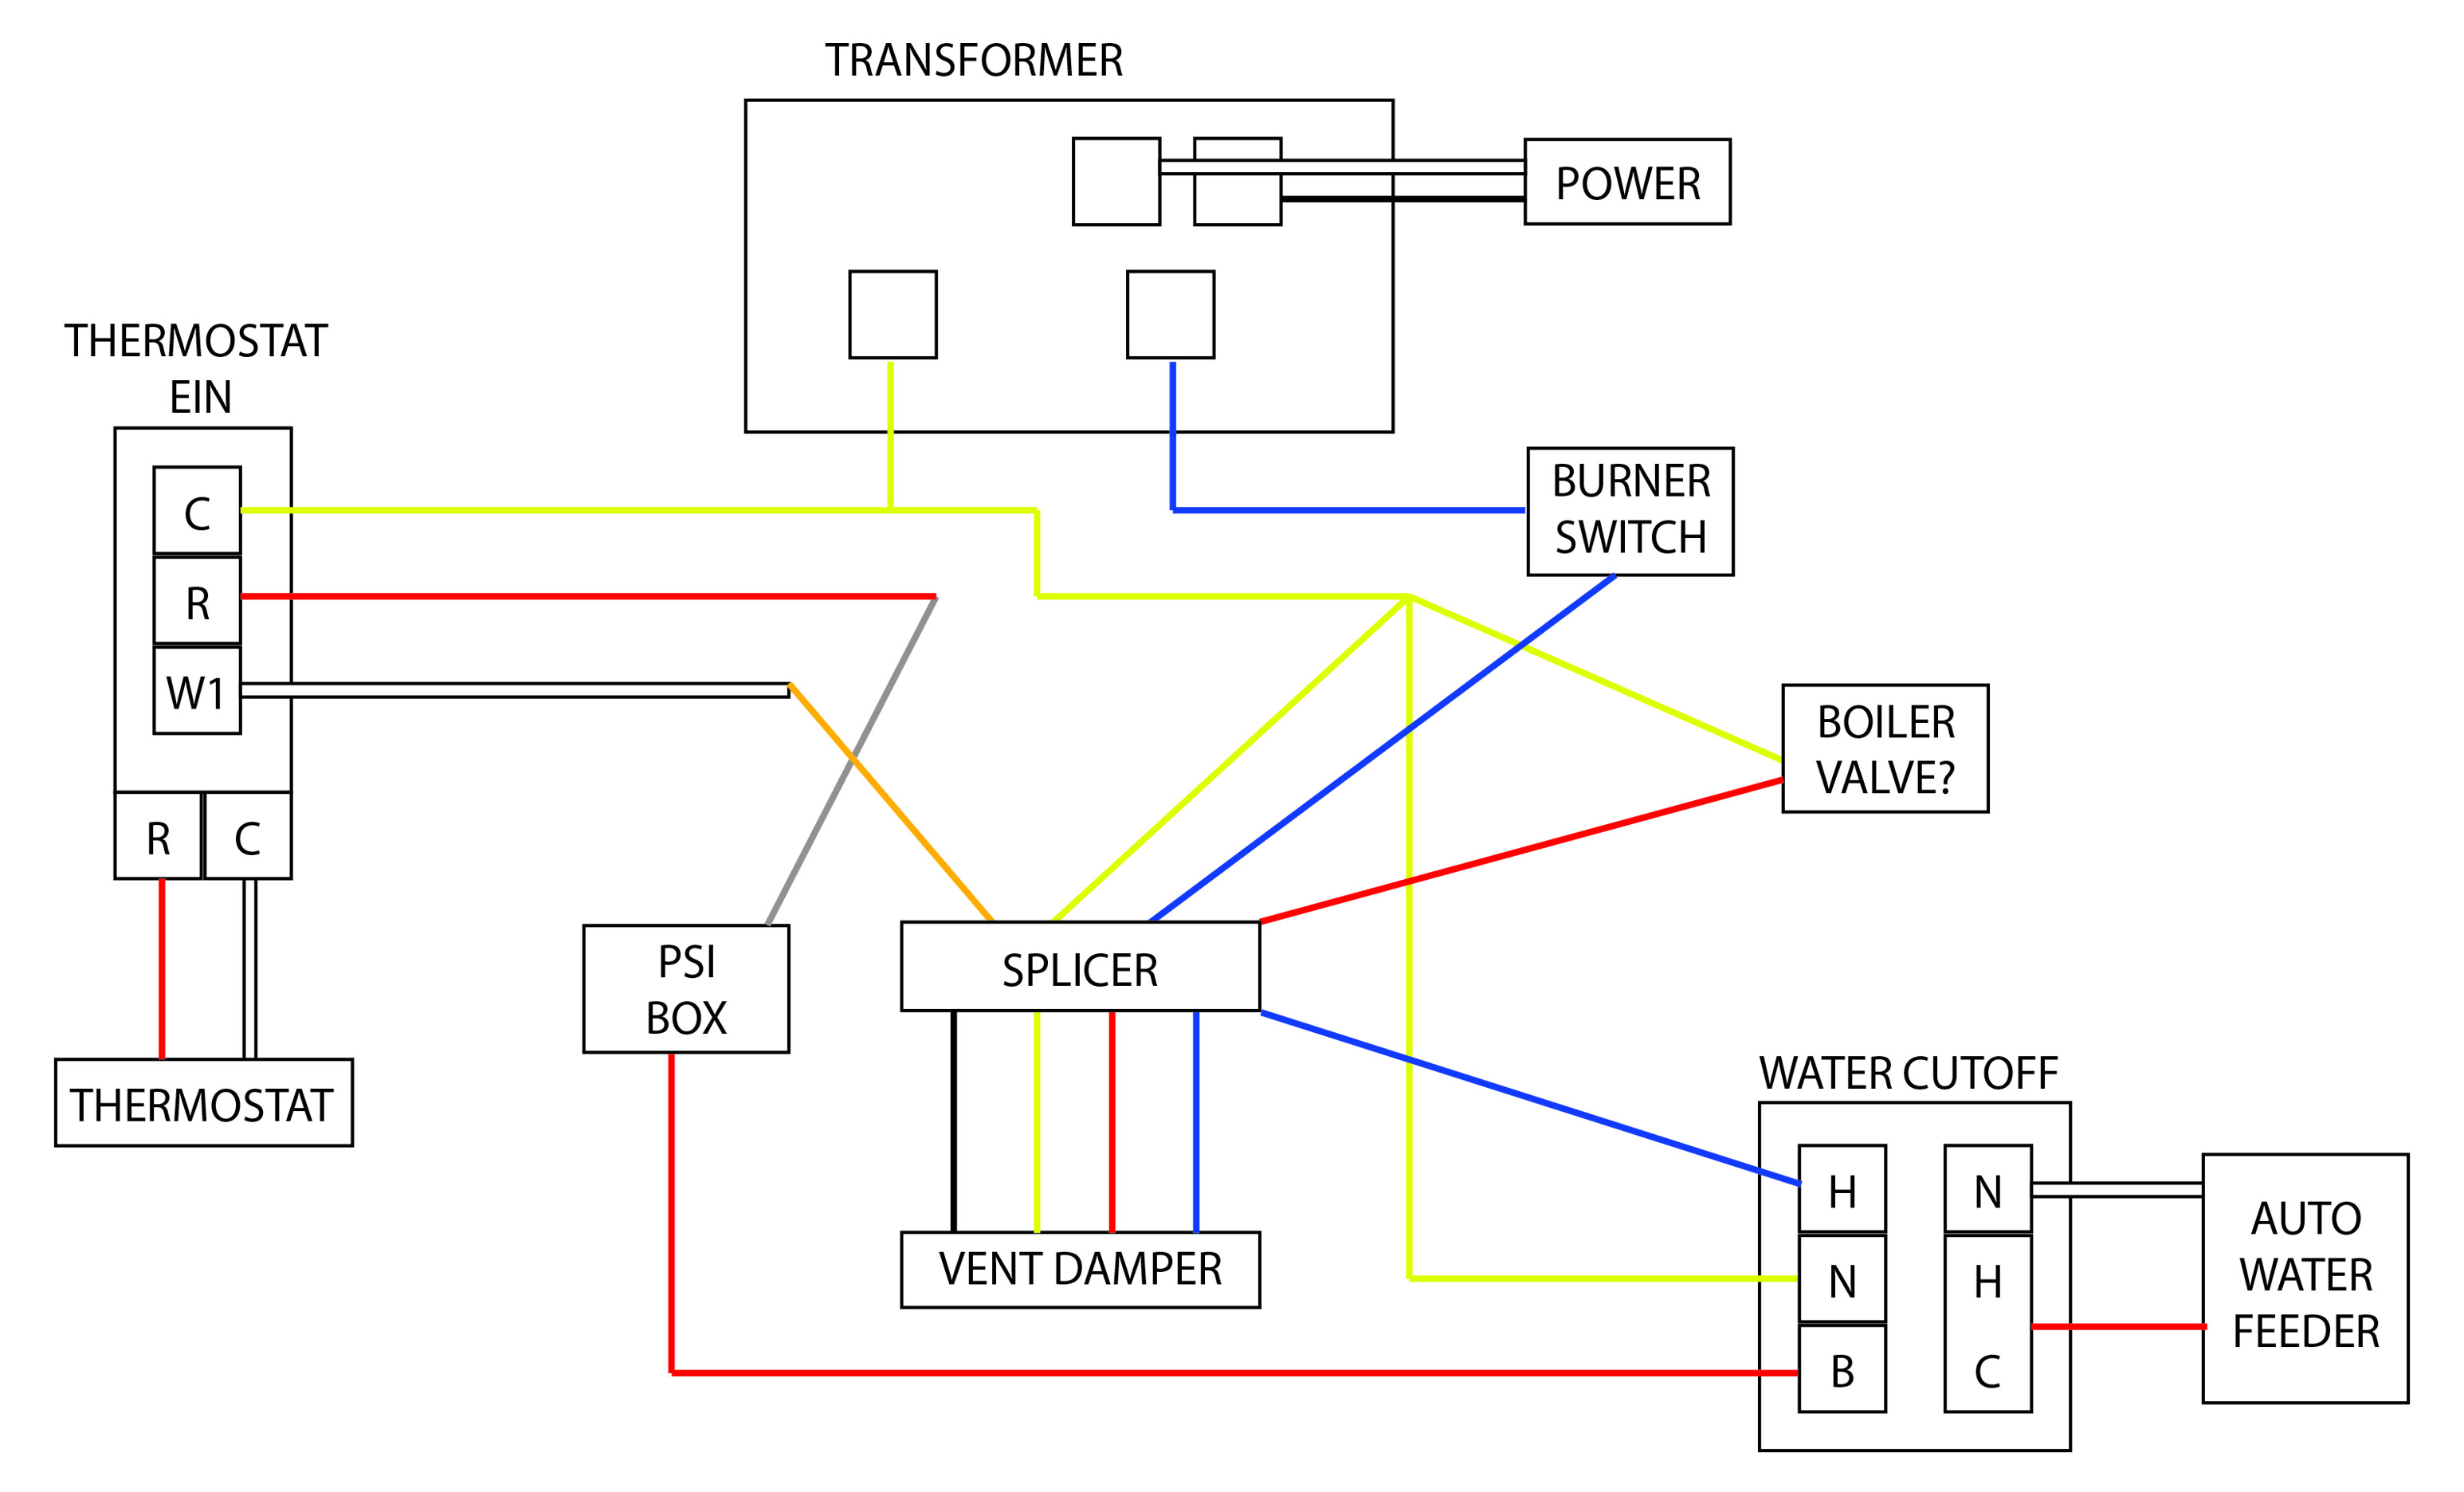 boiler thermostat wiring diagram baldor motor diagrams automatic water feeder shuts off power at low